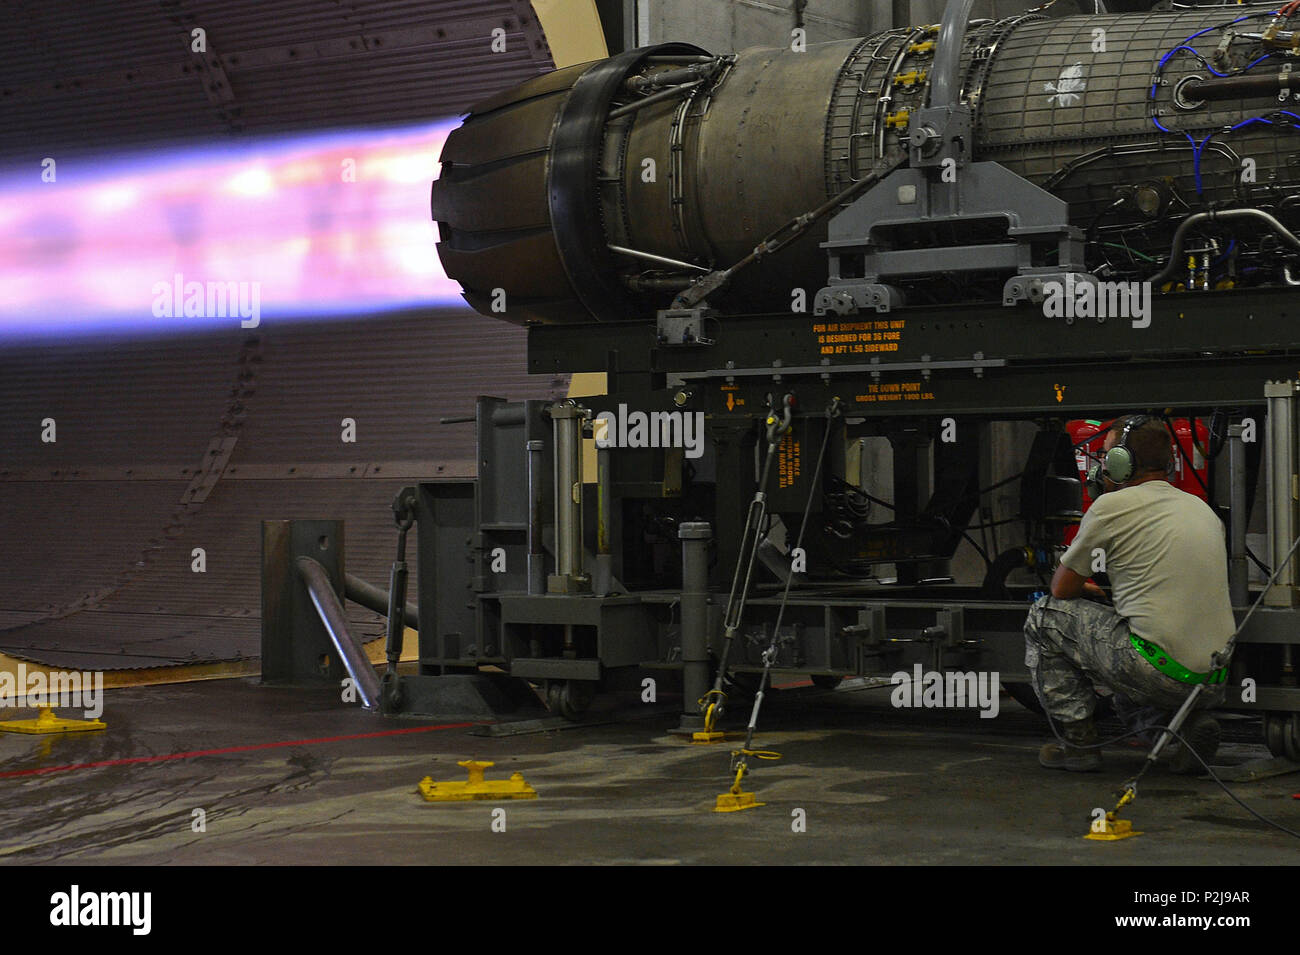 U.S. Air Force Staff Sgt. Dale Rodgers, 20th Component Maintenance Squadron aerospace propulsion craftsman, examines an afterburner during an F-16CM Fighting Falcon engine check at the 20th CMS engine test facility at Shaw Air Force Base, Sept. 26, 2016. An F-16 engine in full afterburn utilizes a thrust of 32,000 pounds to propel it into flight. (U.S. Air Force photo by Airman 1st Class Christopher Maldonado) Stock Photo